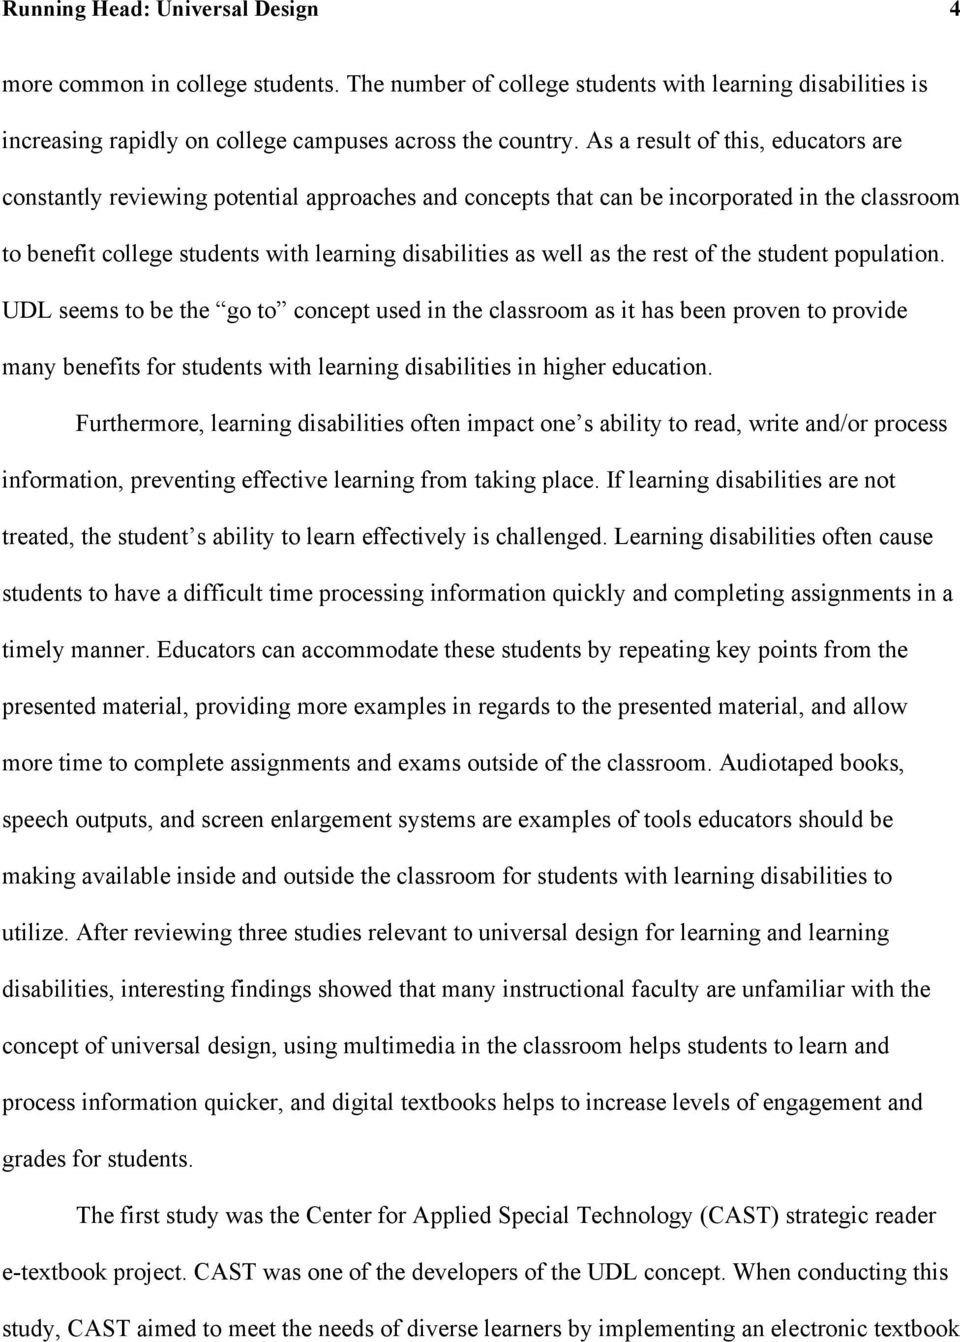 the rest of the student population. UDL seems to be the go to concept used in the classroom as it has been proven to provide many benefits for students with learning disabilities in higher education.